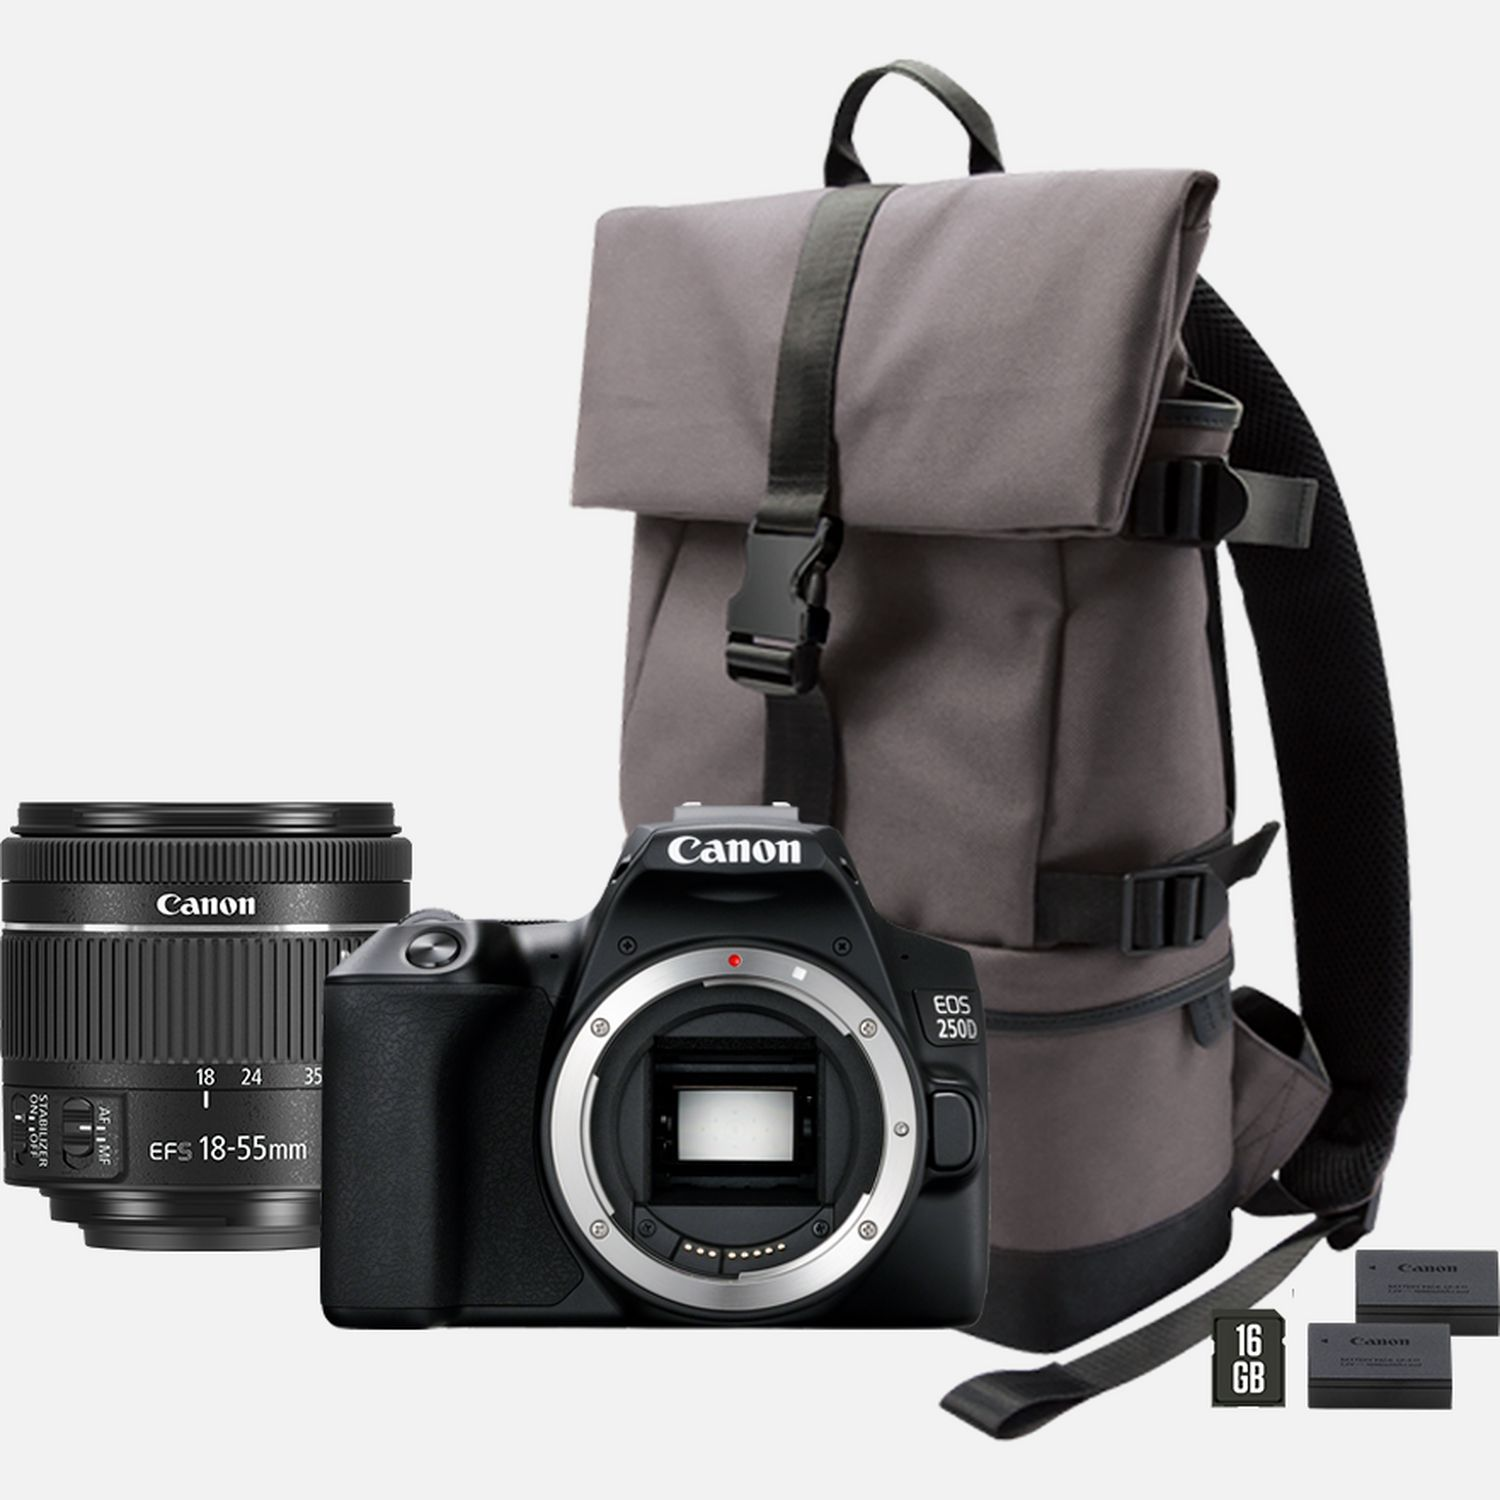 Image of Canon EOS 250D, Black + 18-55mm f/4-5.6 IS STM Lens Black + Backpack + SD Card + Spare Battery